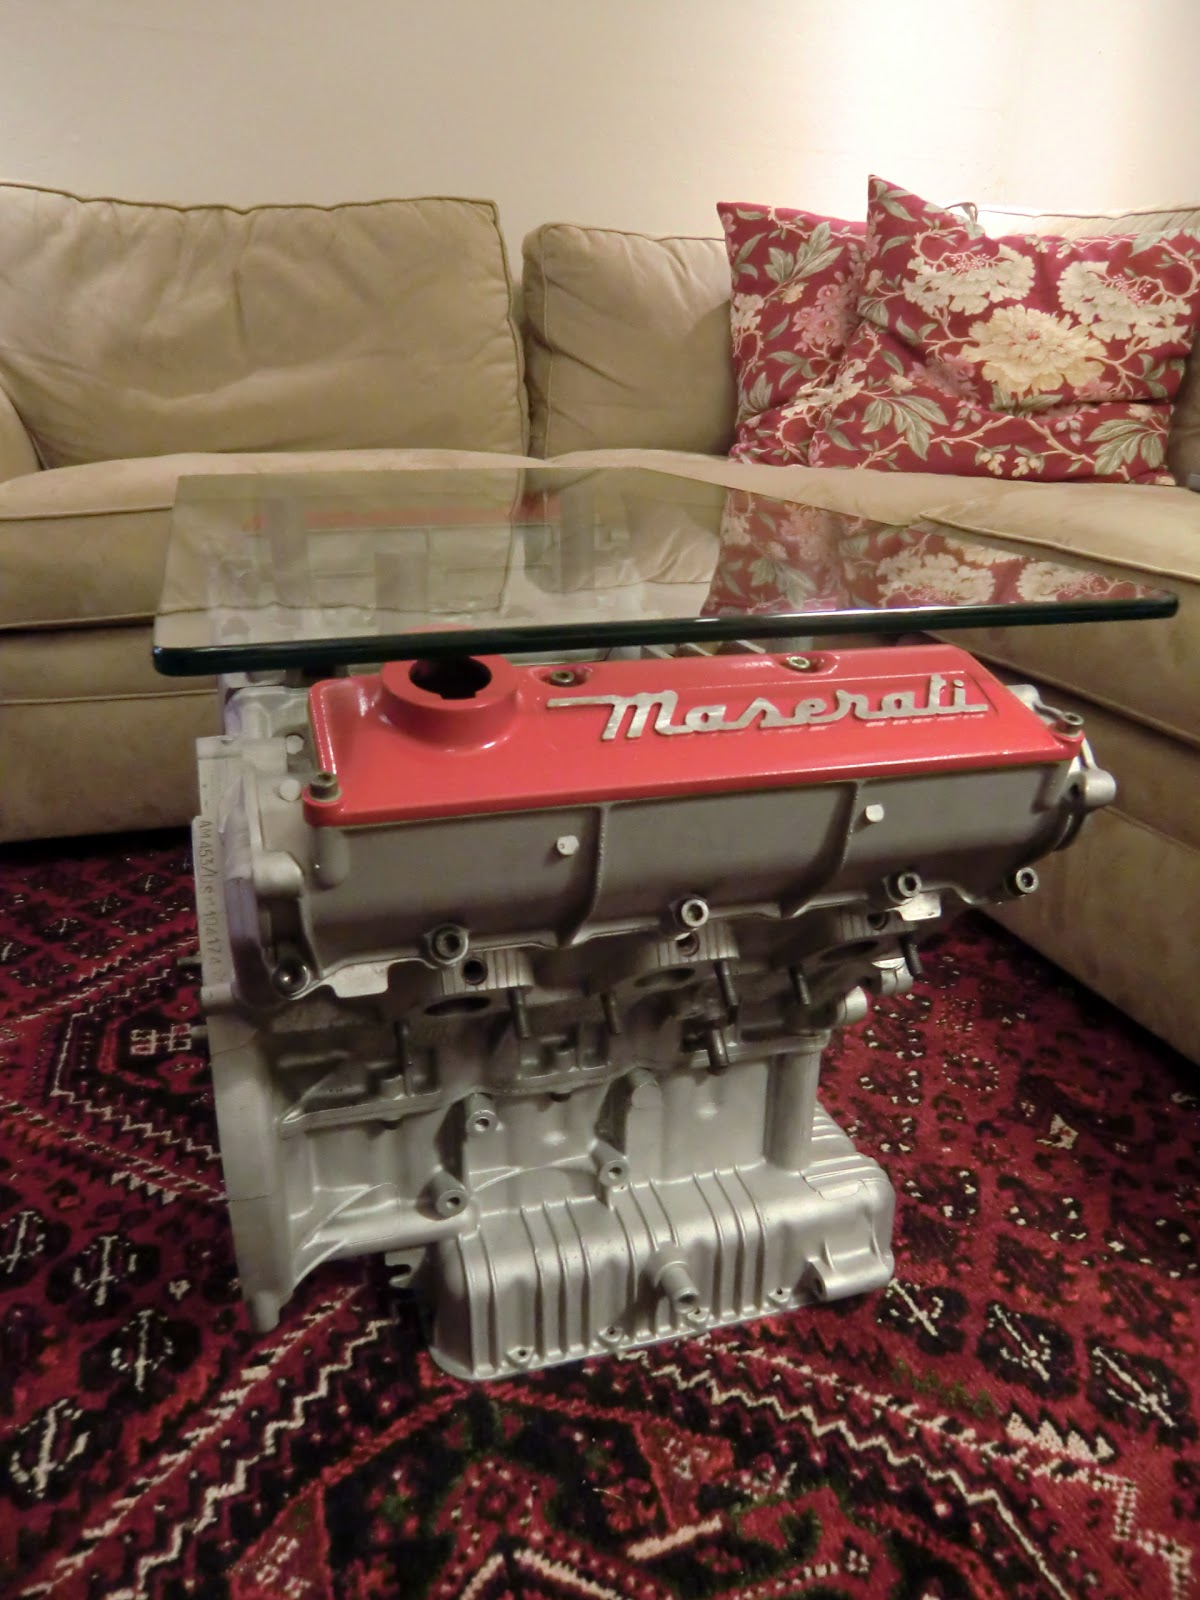 Engine Block Coffee Table Complete! I Picked Up The Glass I Had Specially  Cut Today. I Ended Up Propping The Glass By Chopping Up A Wooden Dowel, ...